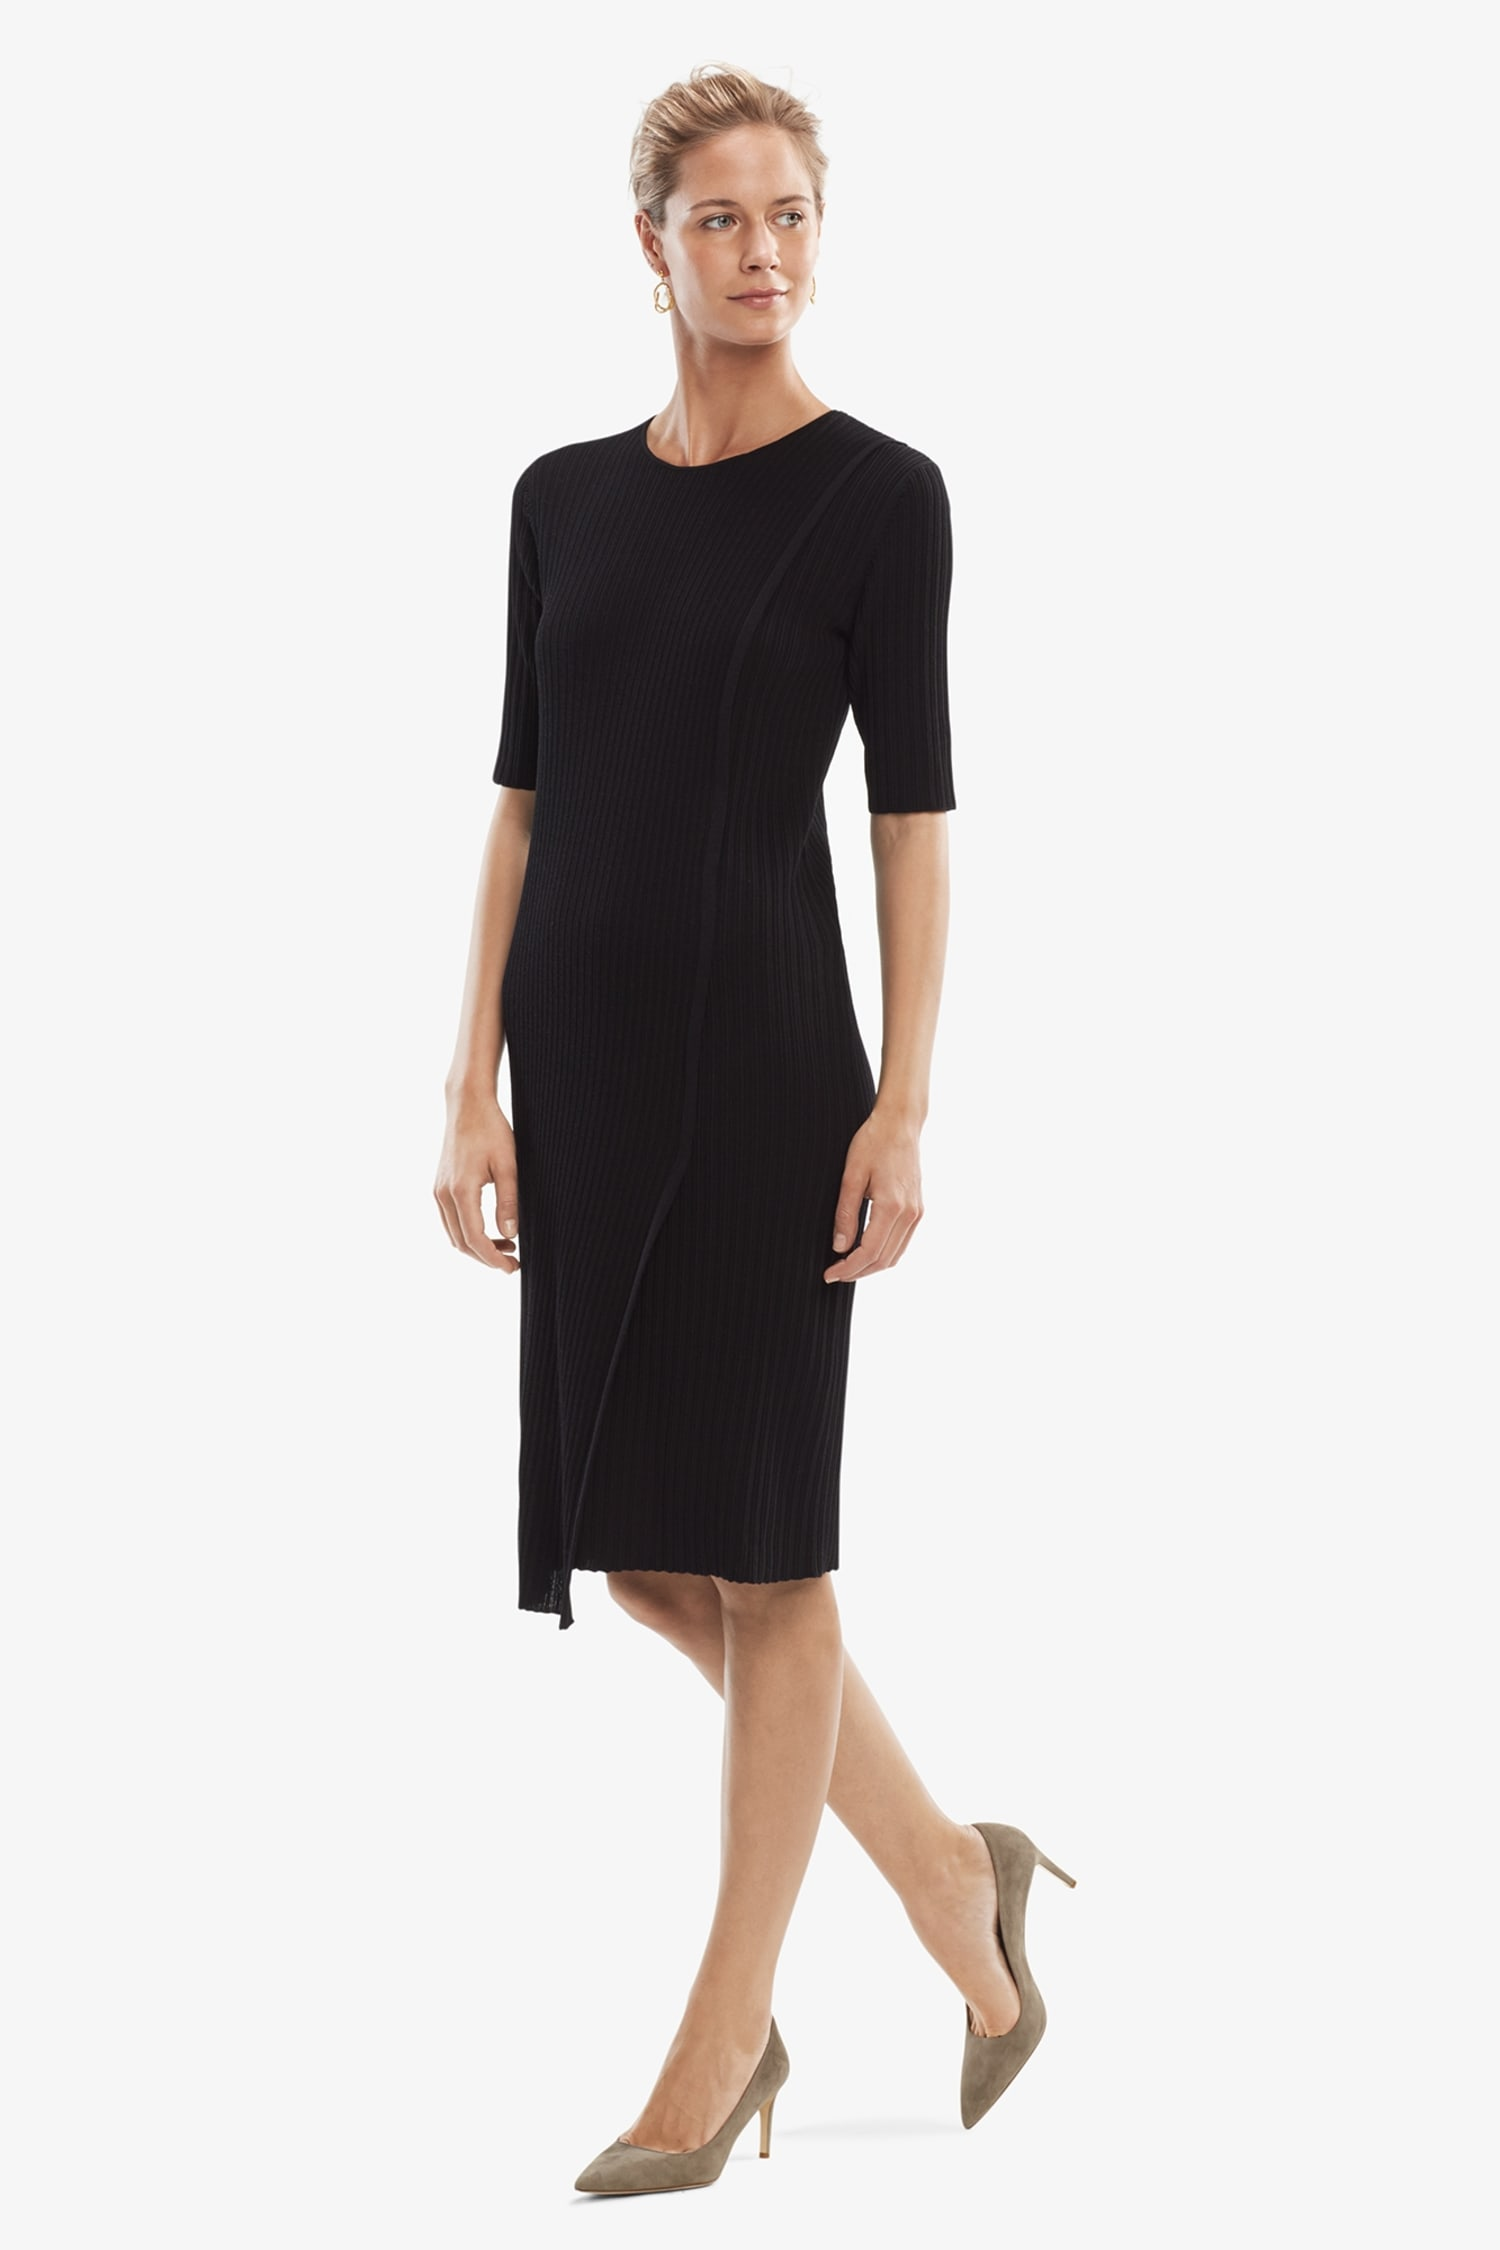 0999c85afb AJ Dress - Black | MM.LaFleur